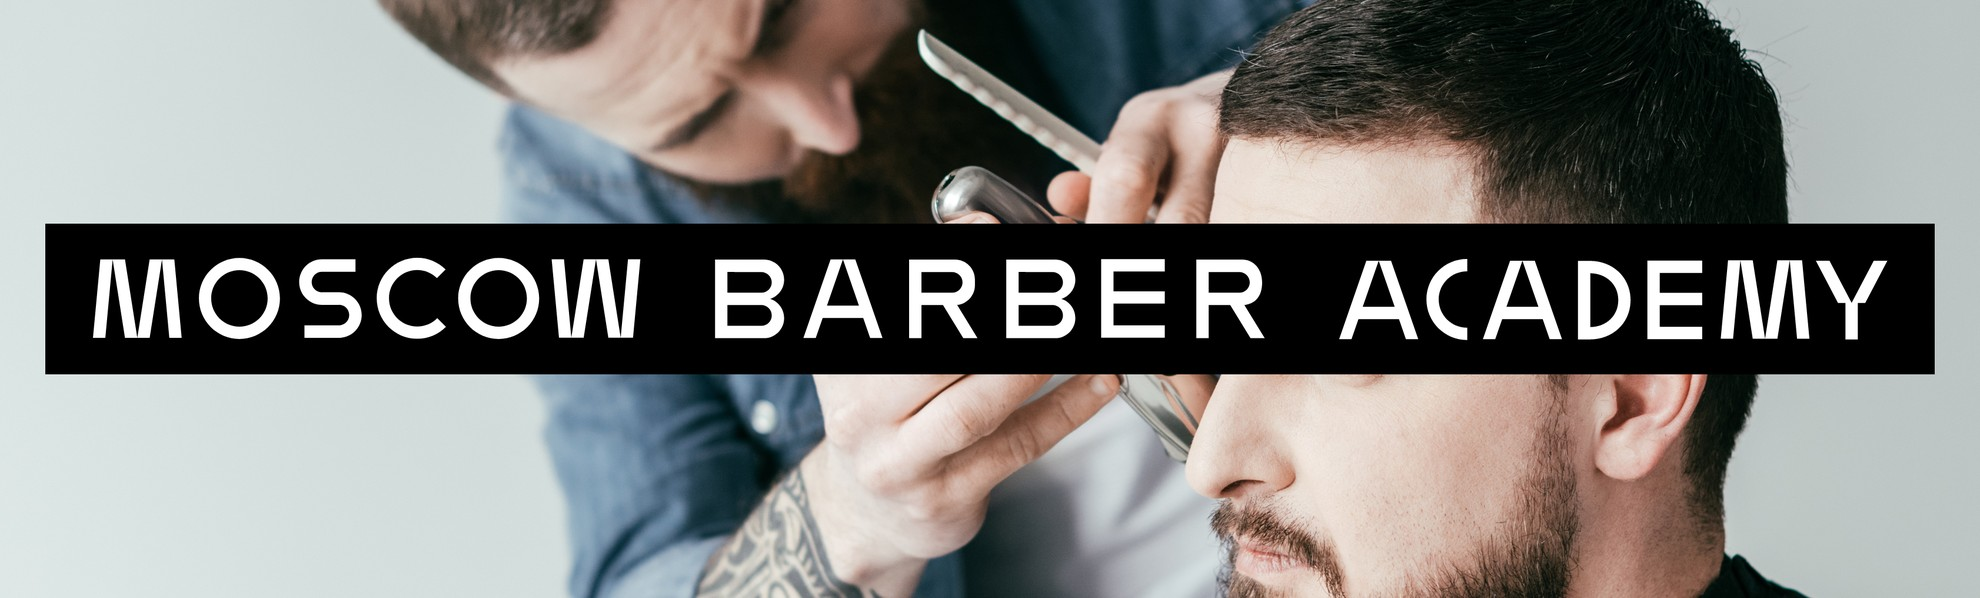 Project for Moscow Barber Academy